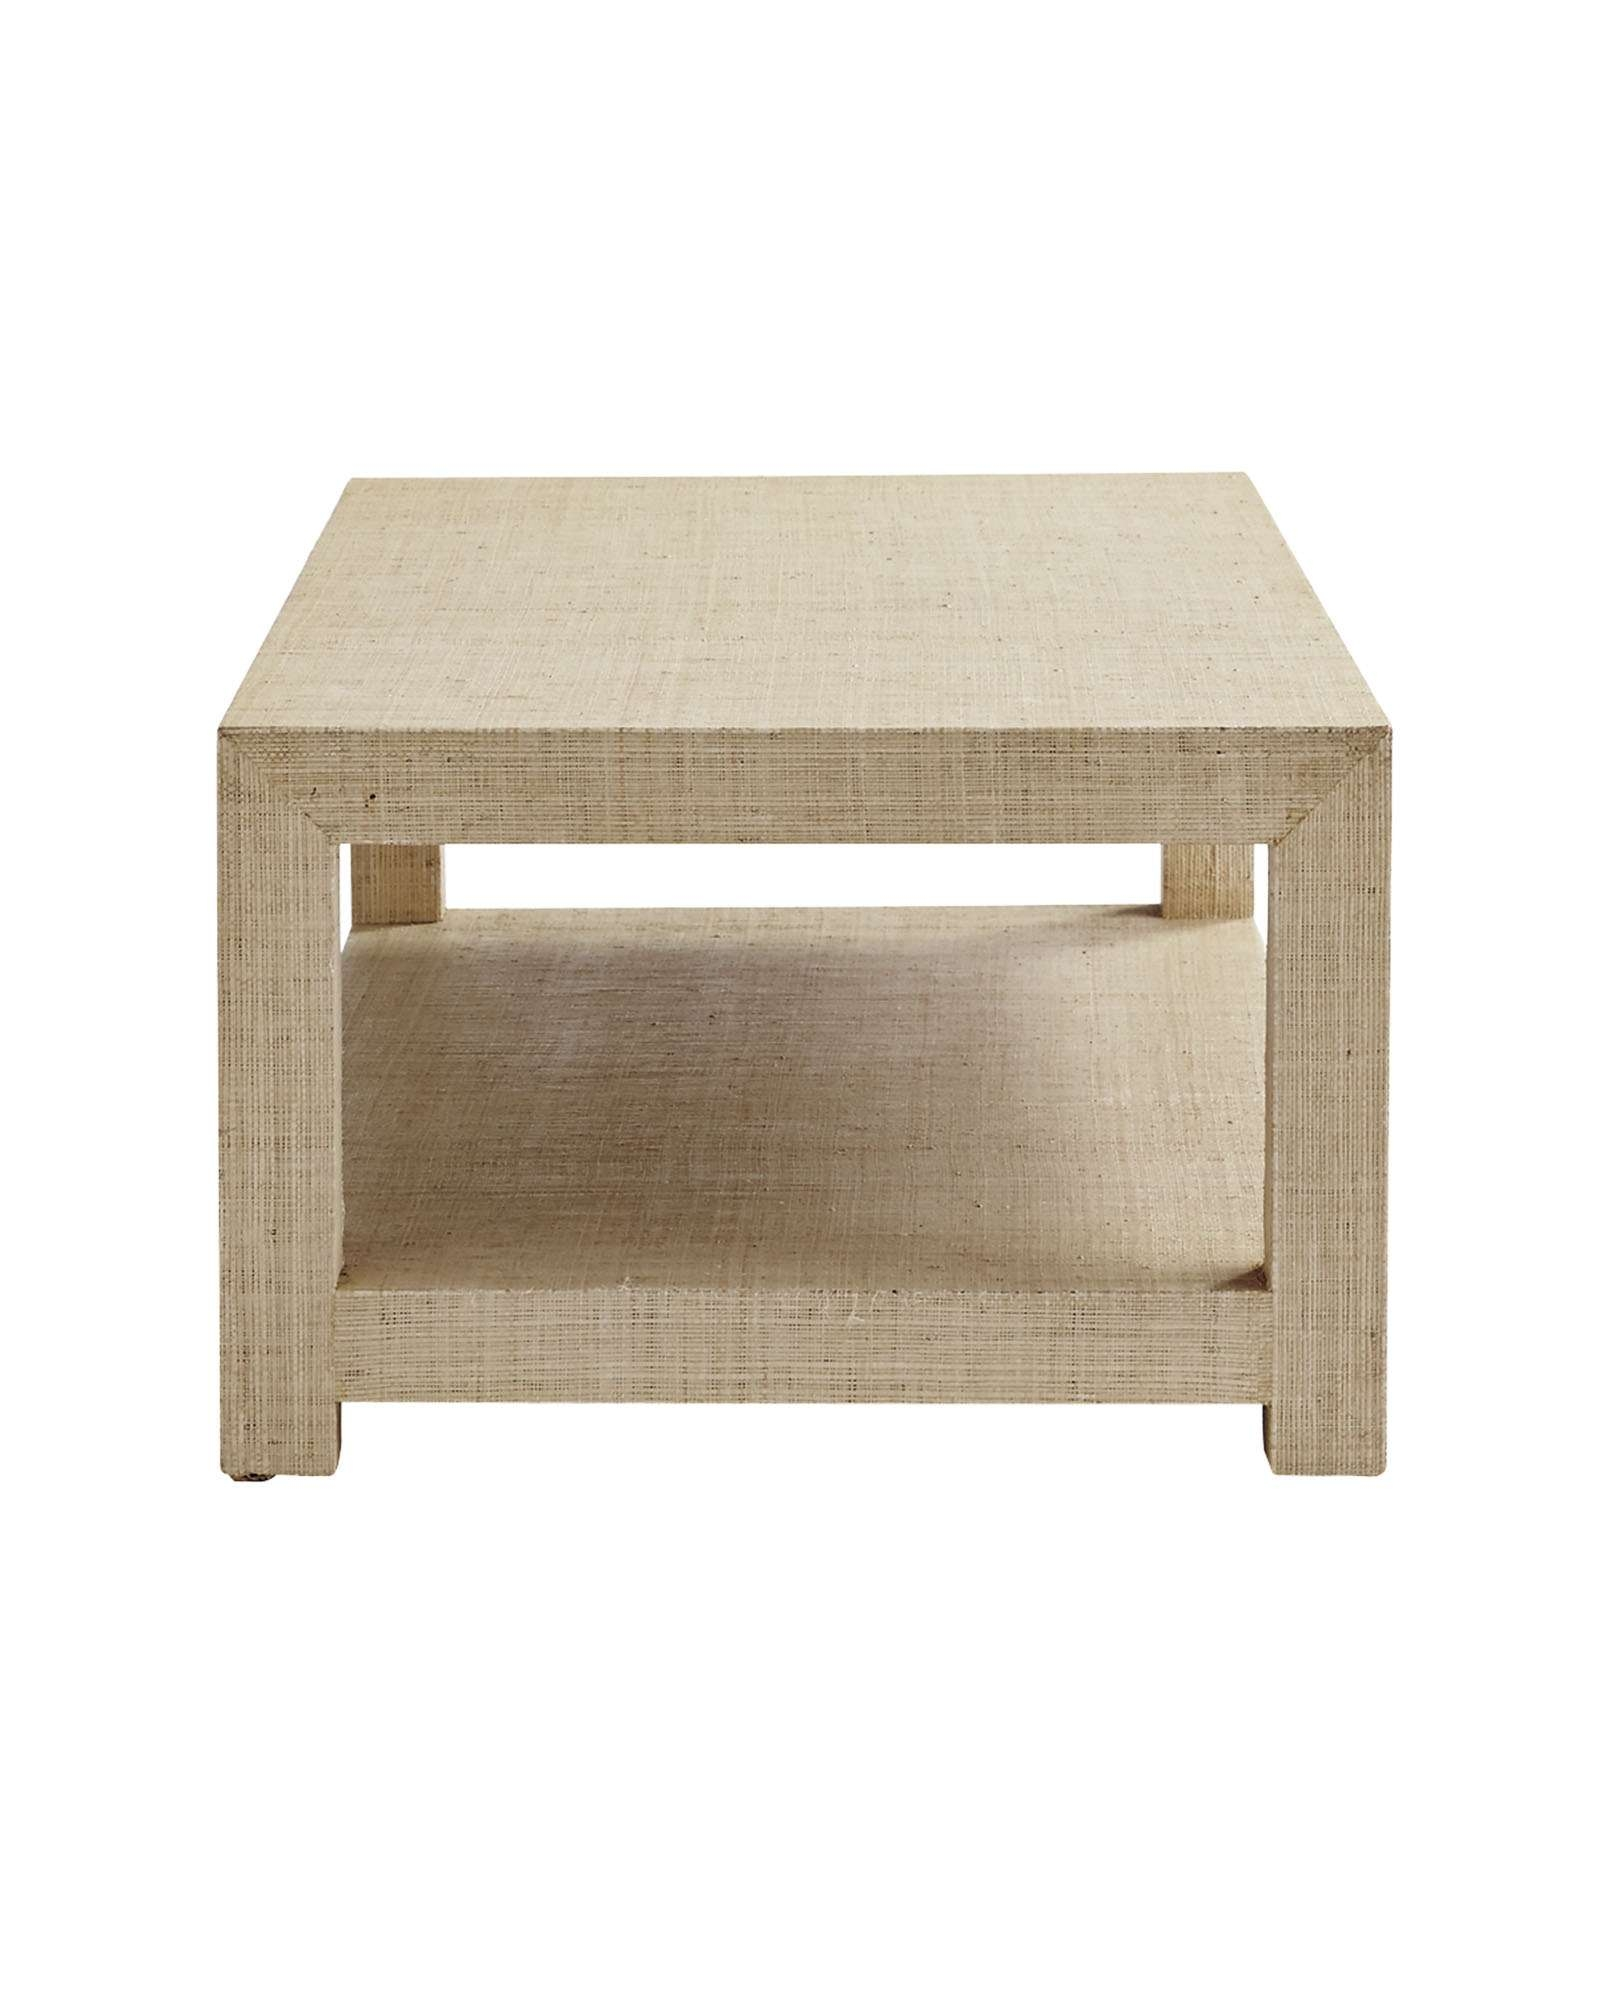 Current Rectangular Coffee Tables With Regard To Blake Raffia Rectangular Coffee Table – Small – Serena & Lily (View 6 of 20)